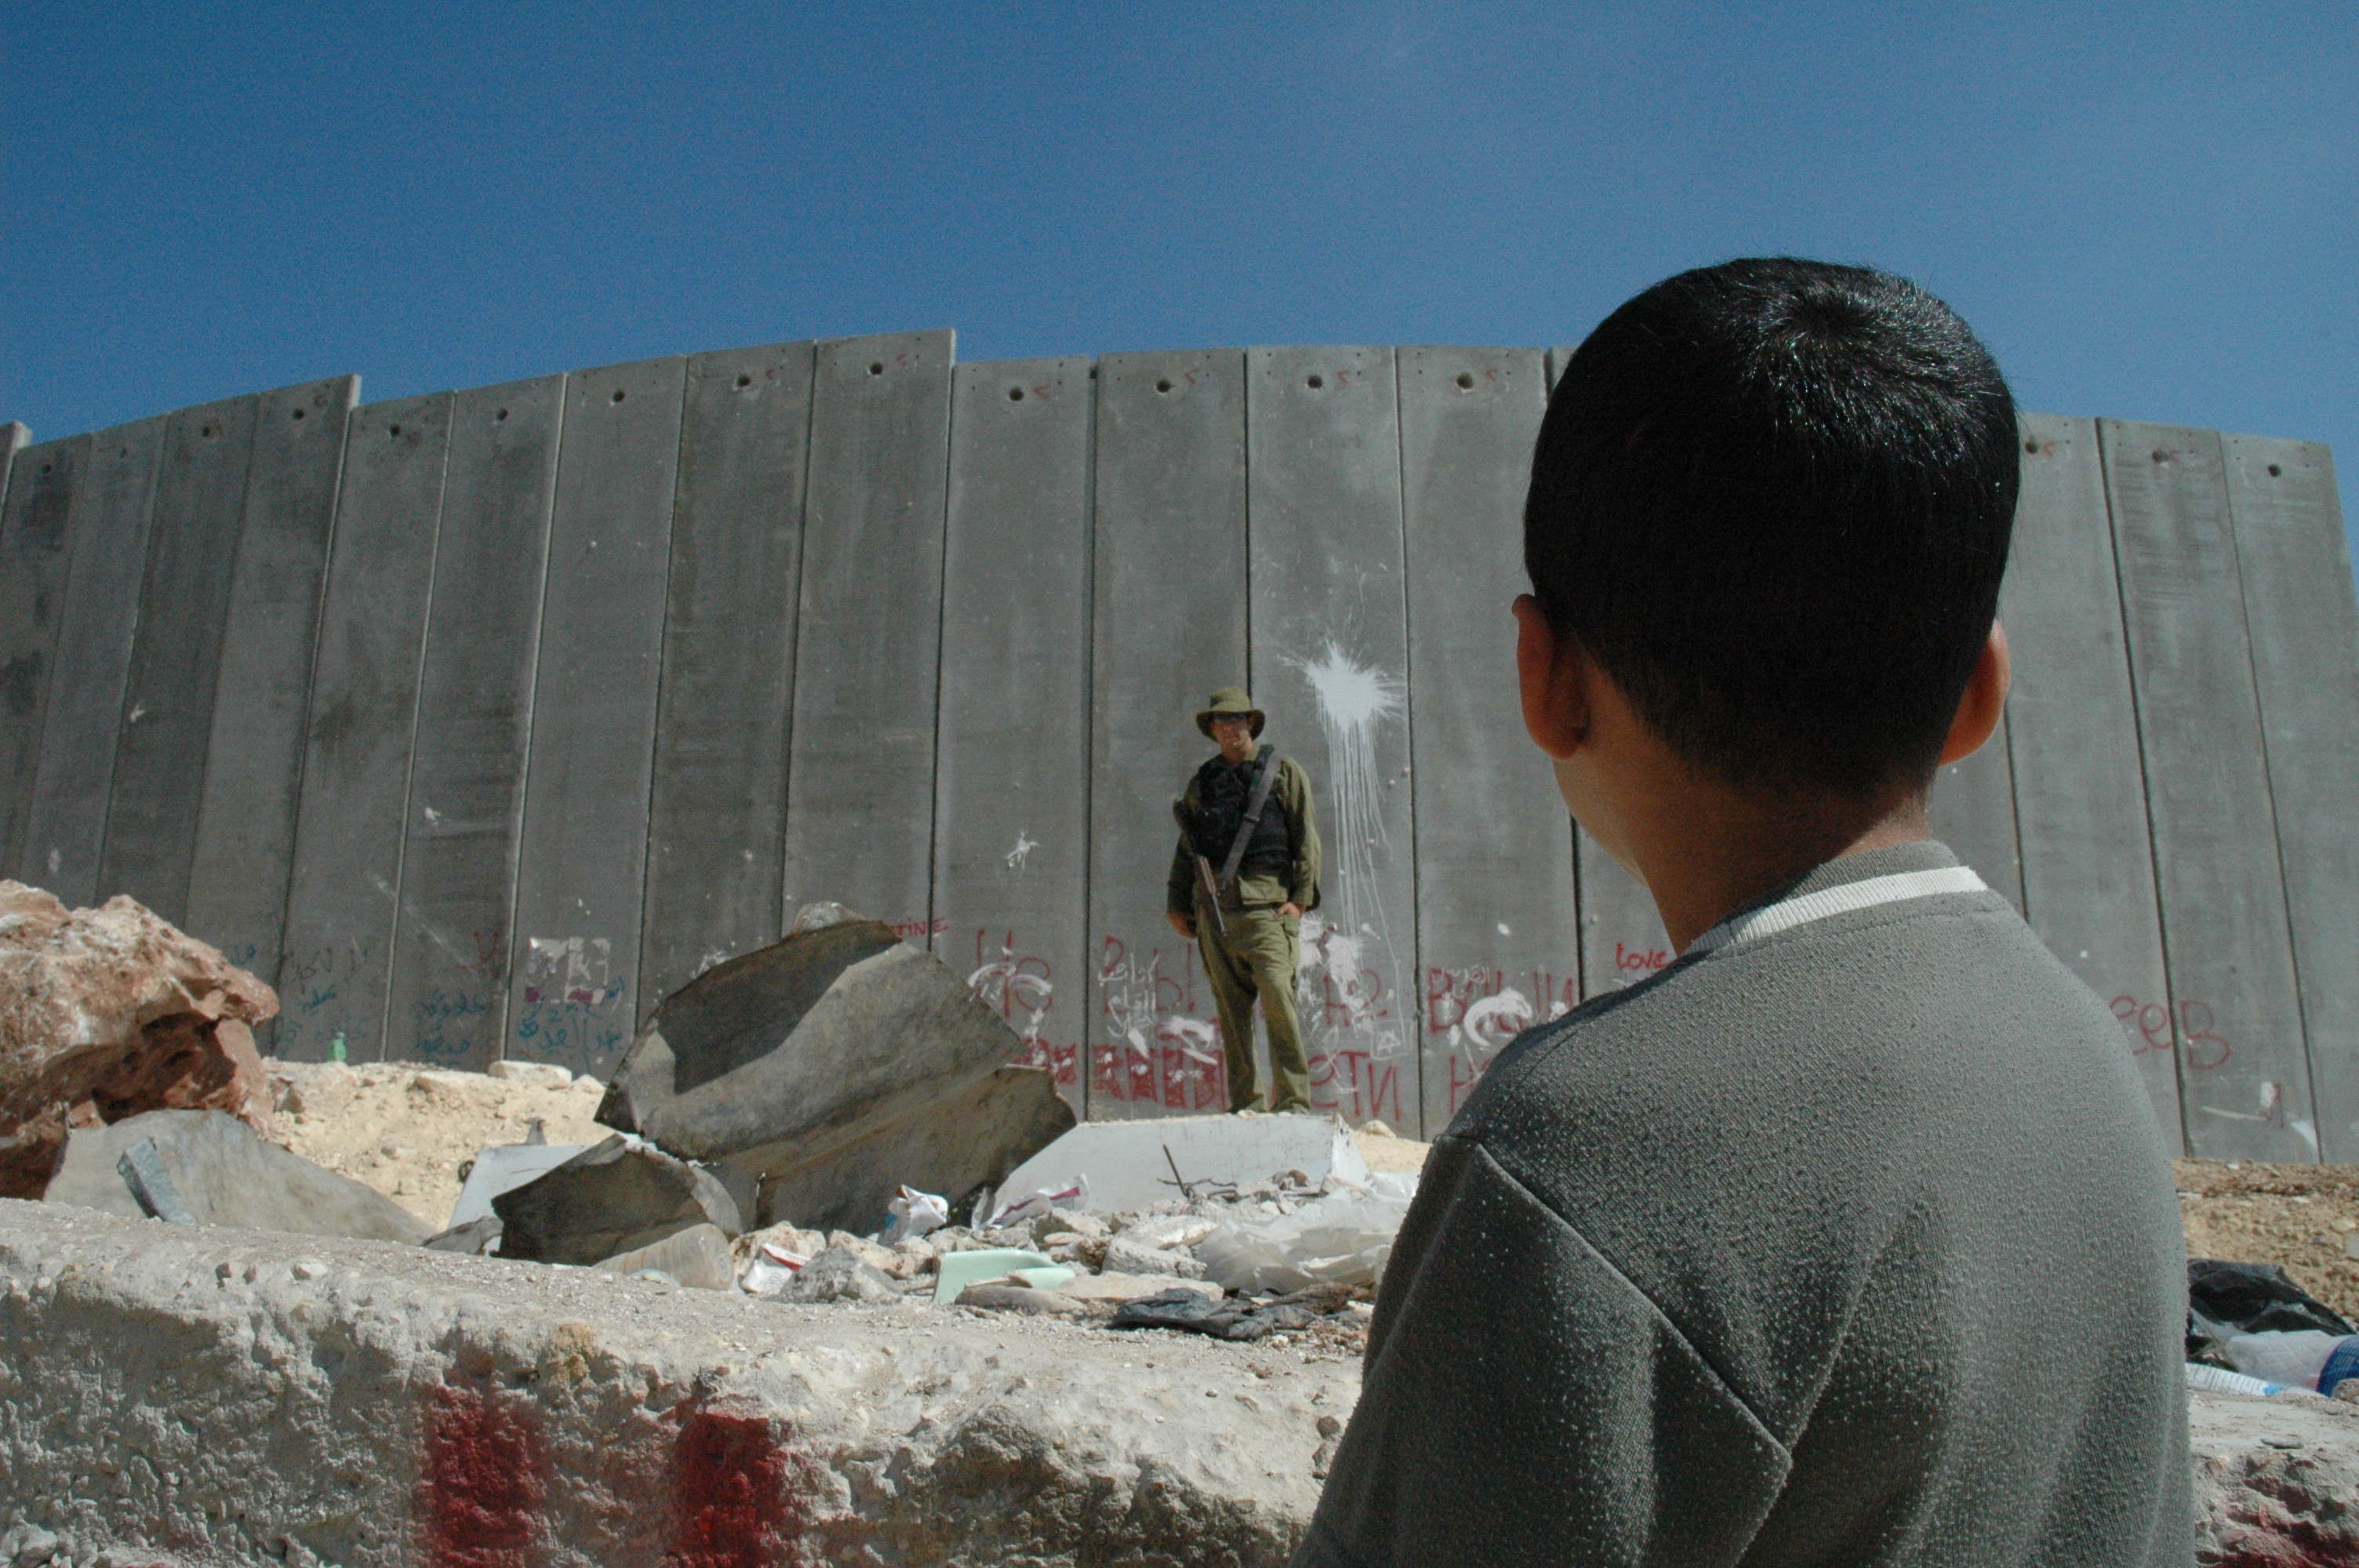 an overview of the palestinian crisis and the origin of the conflict